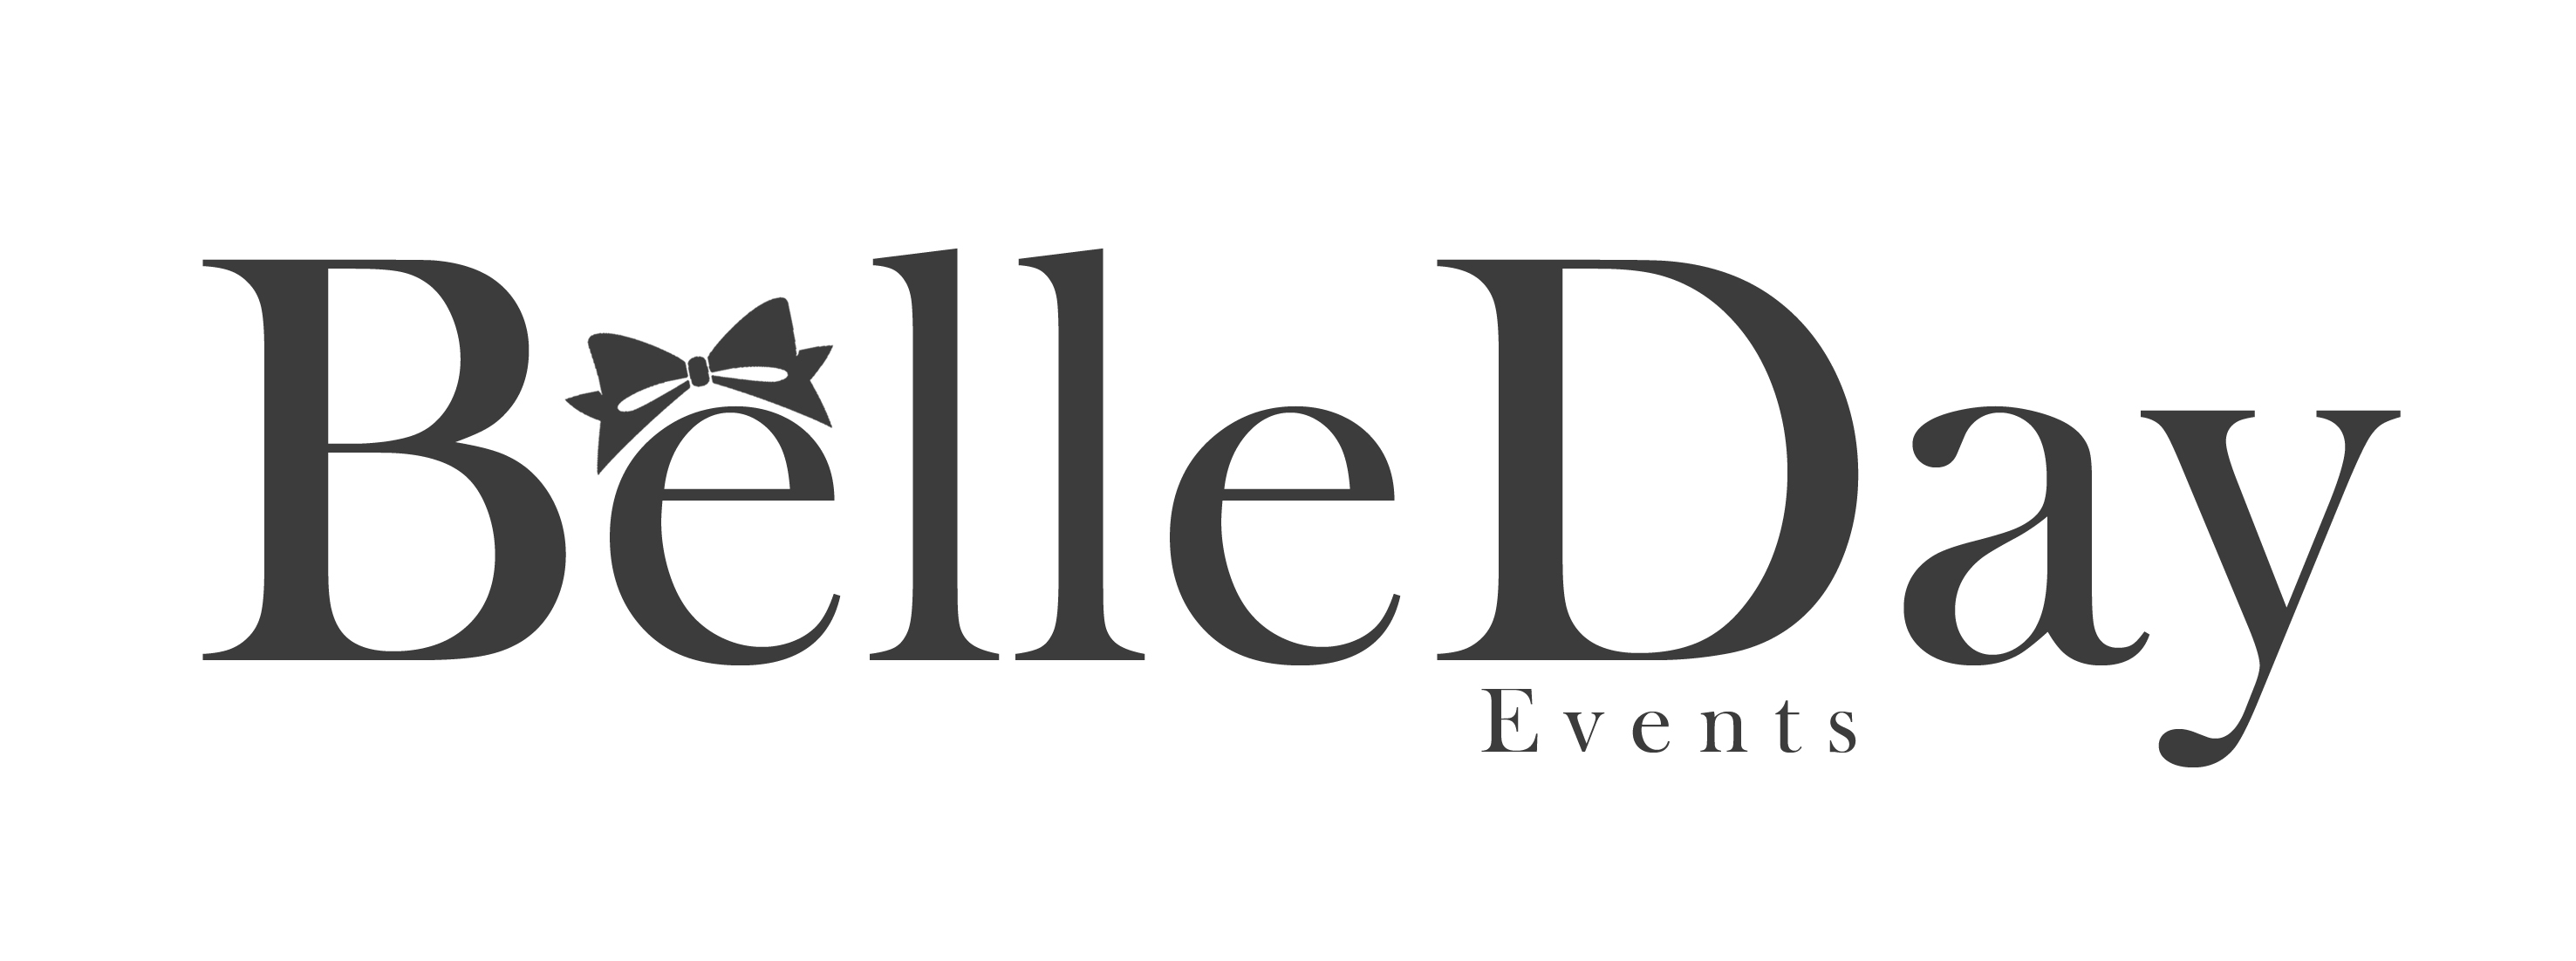 BelleDay Events